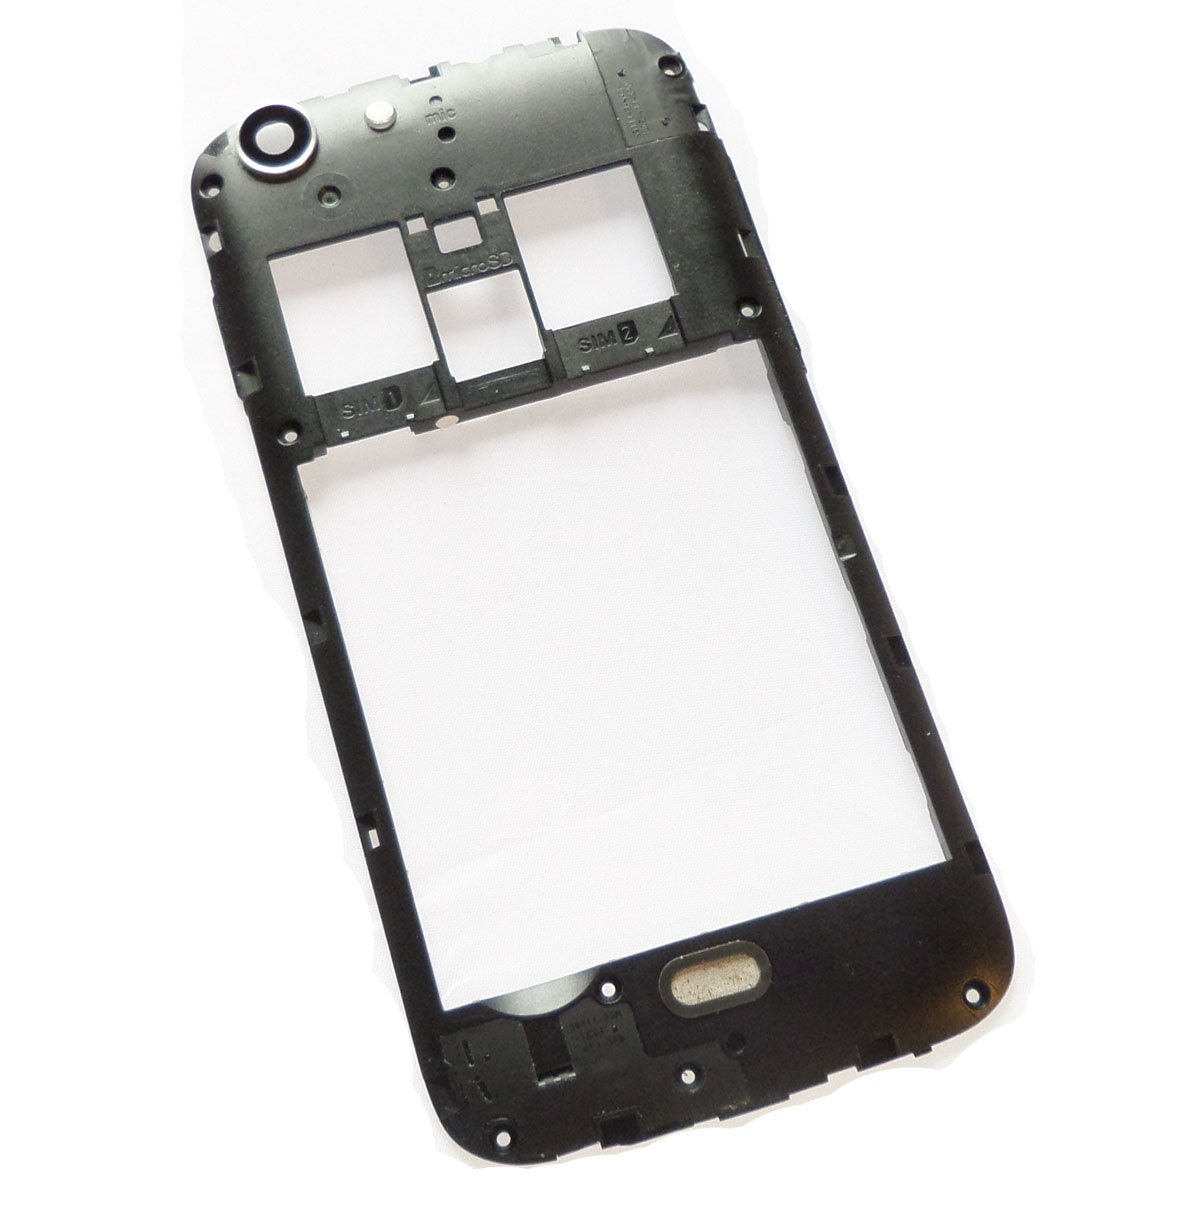 Chassis arrière pour Wiko Stairway